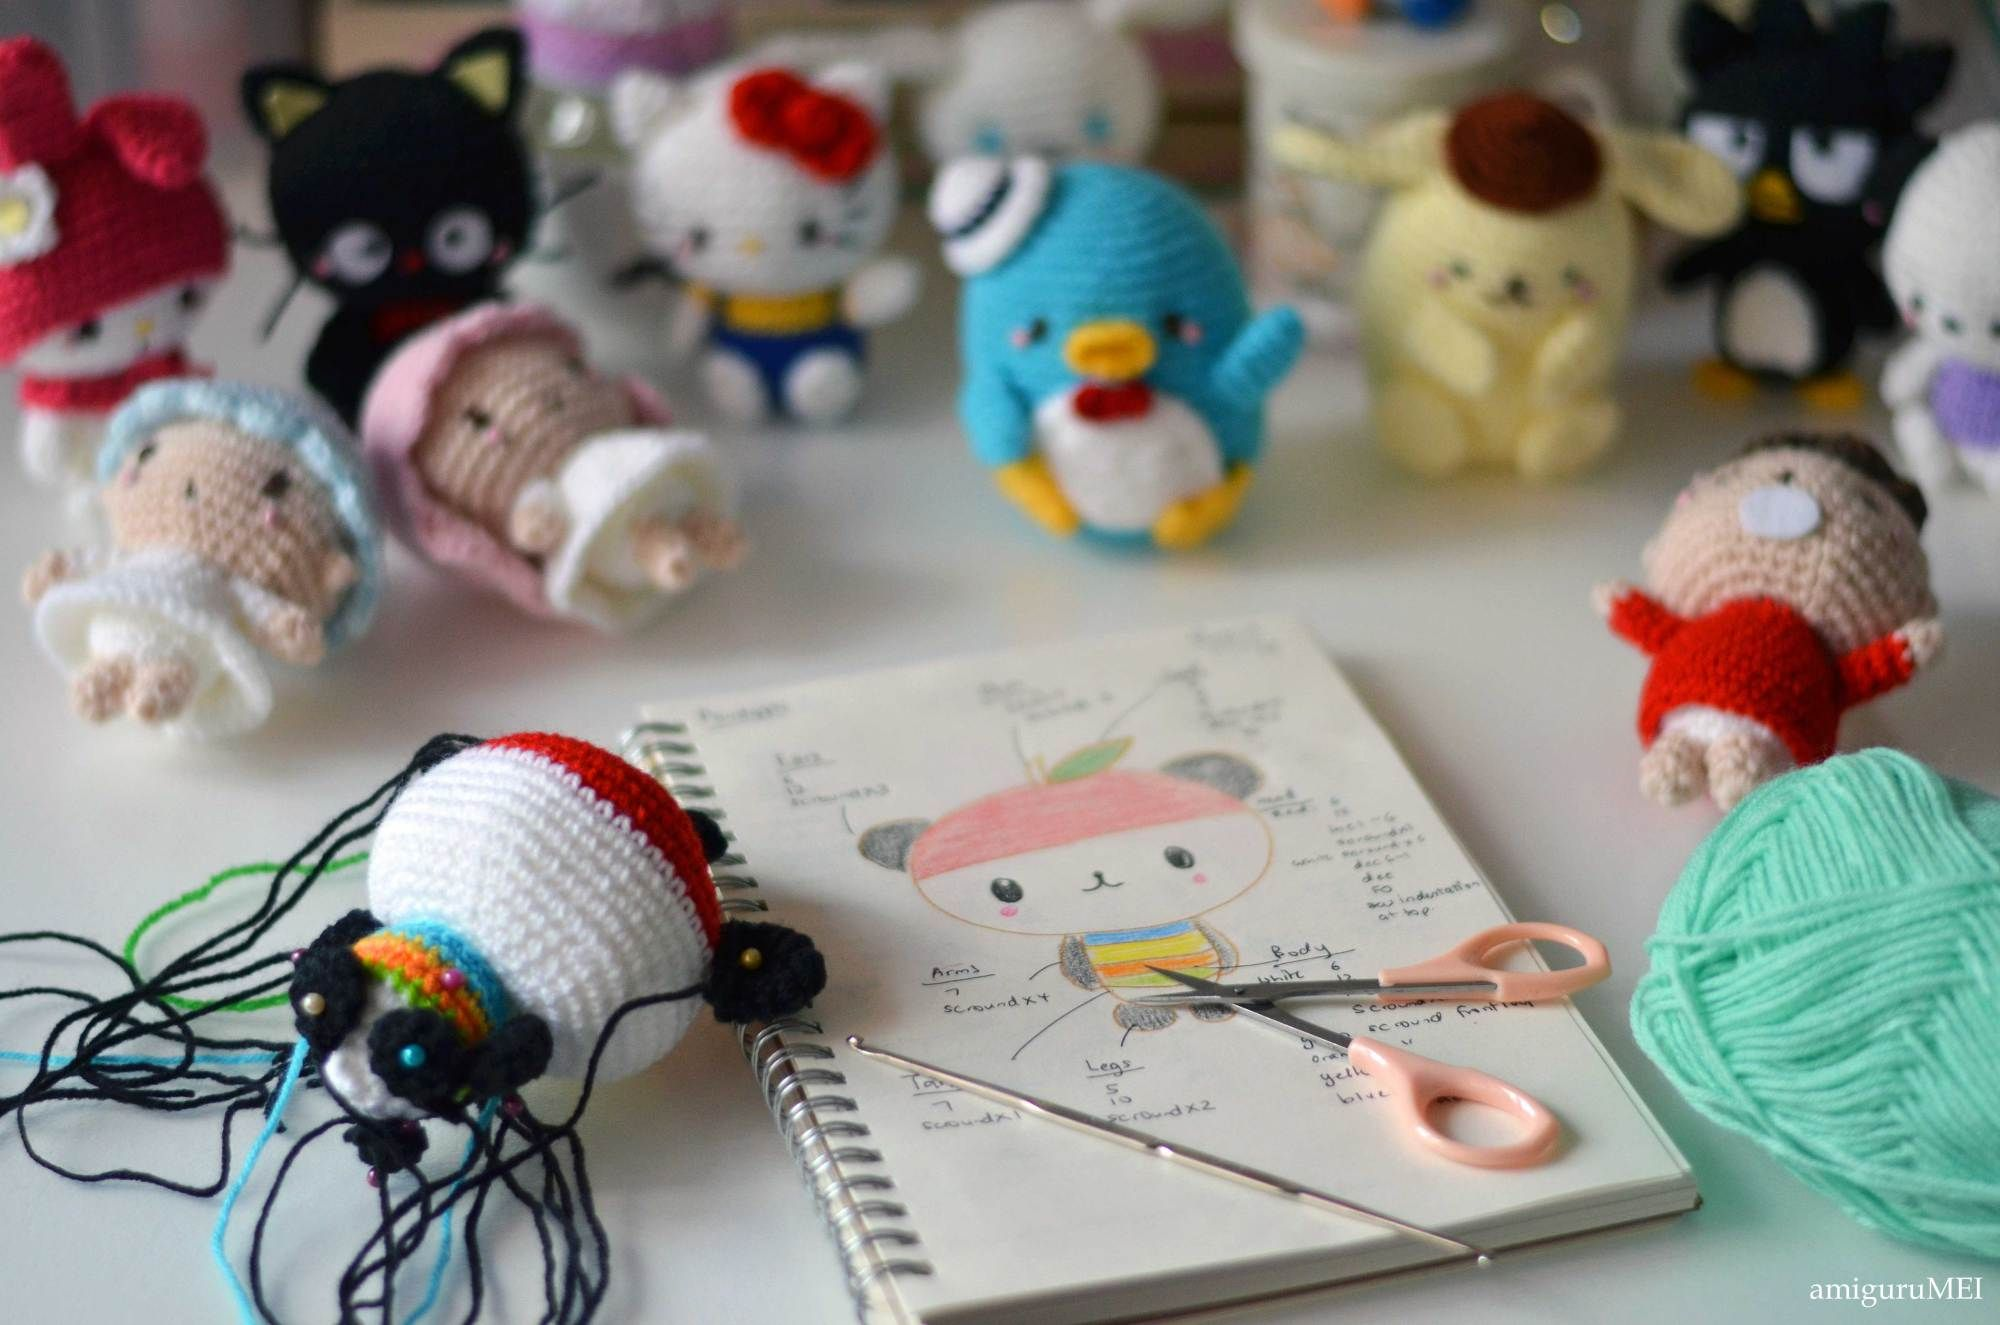 Amigurumi Crochet Books : Hello kitty crochet by mei li lee of amigurumei amigurumi